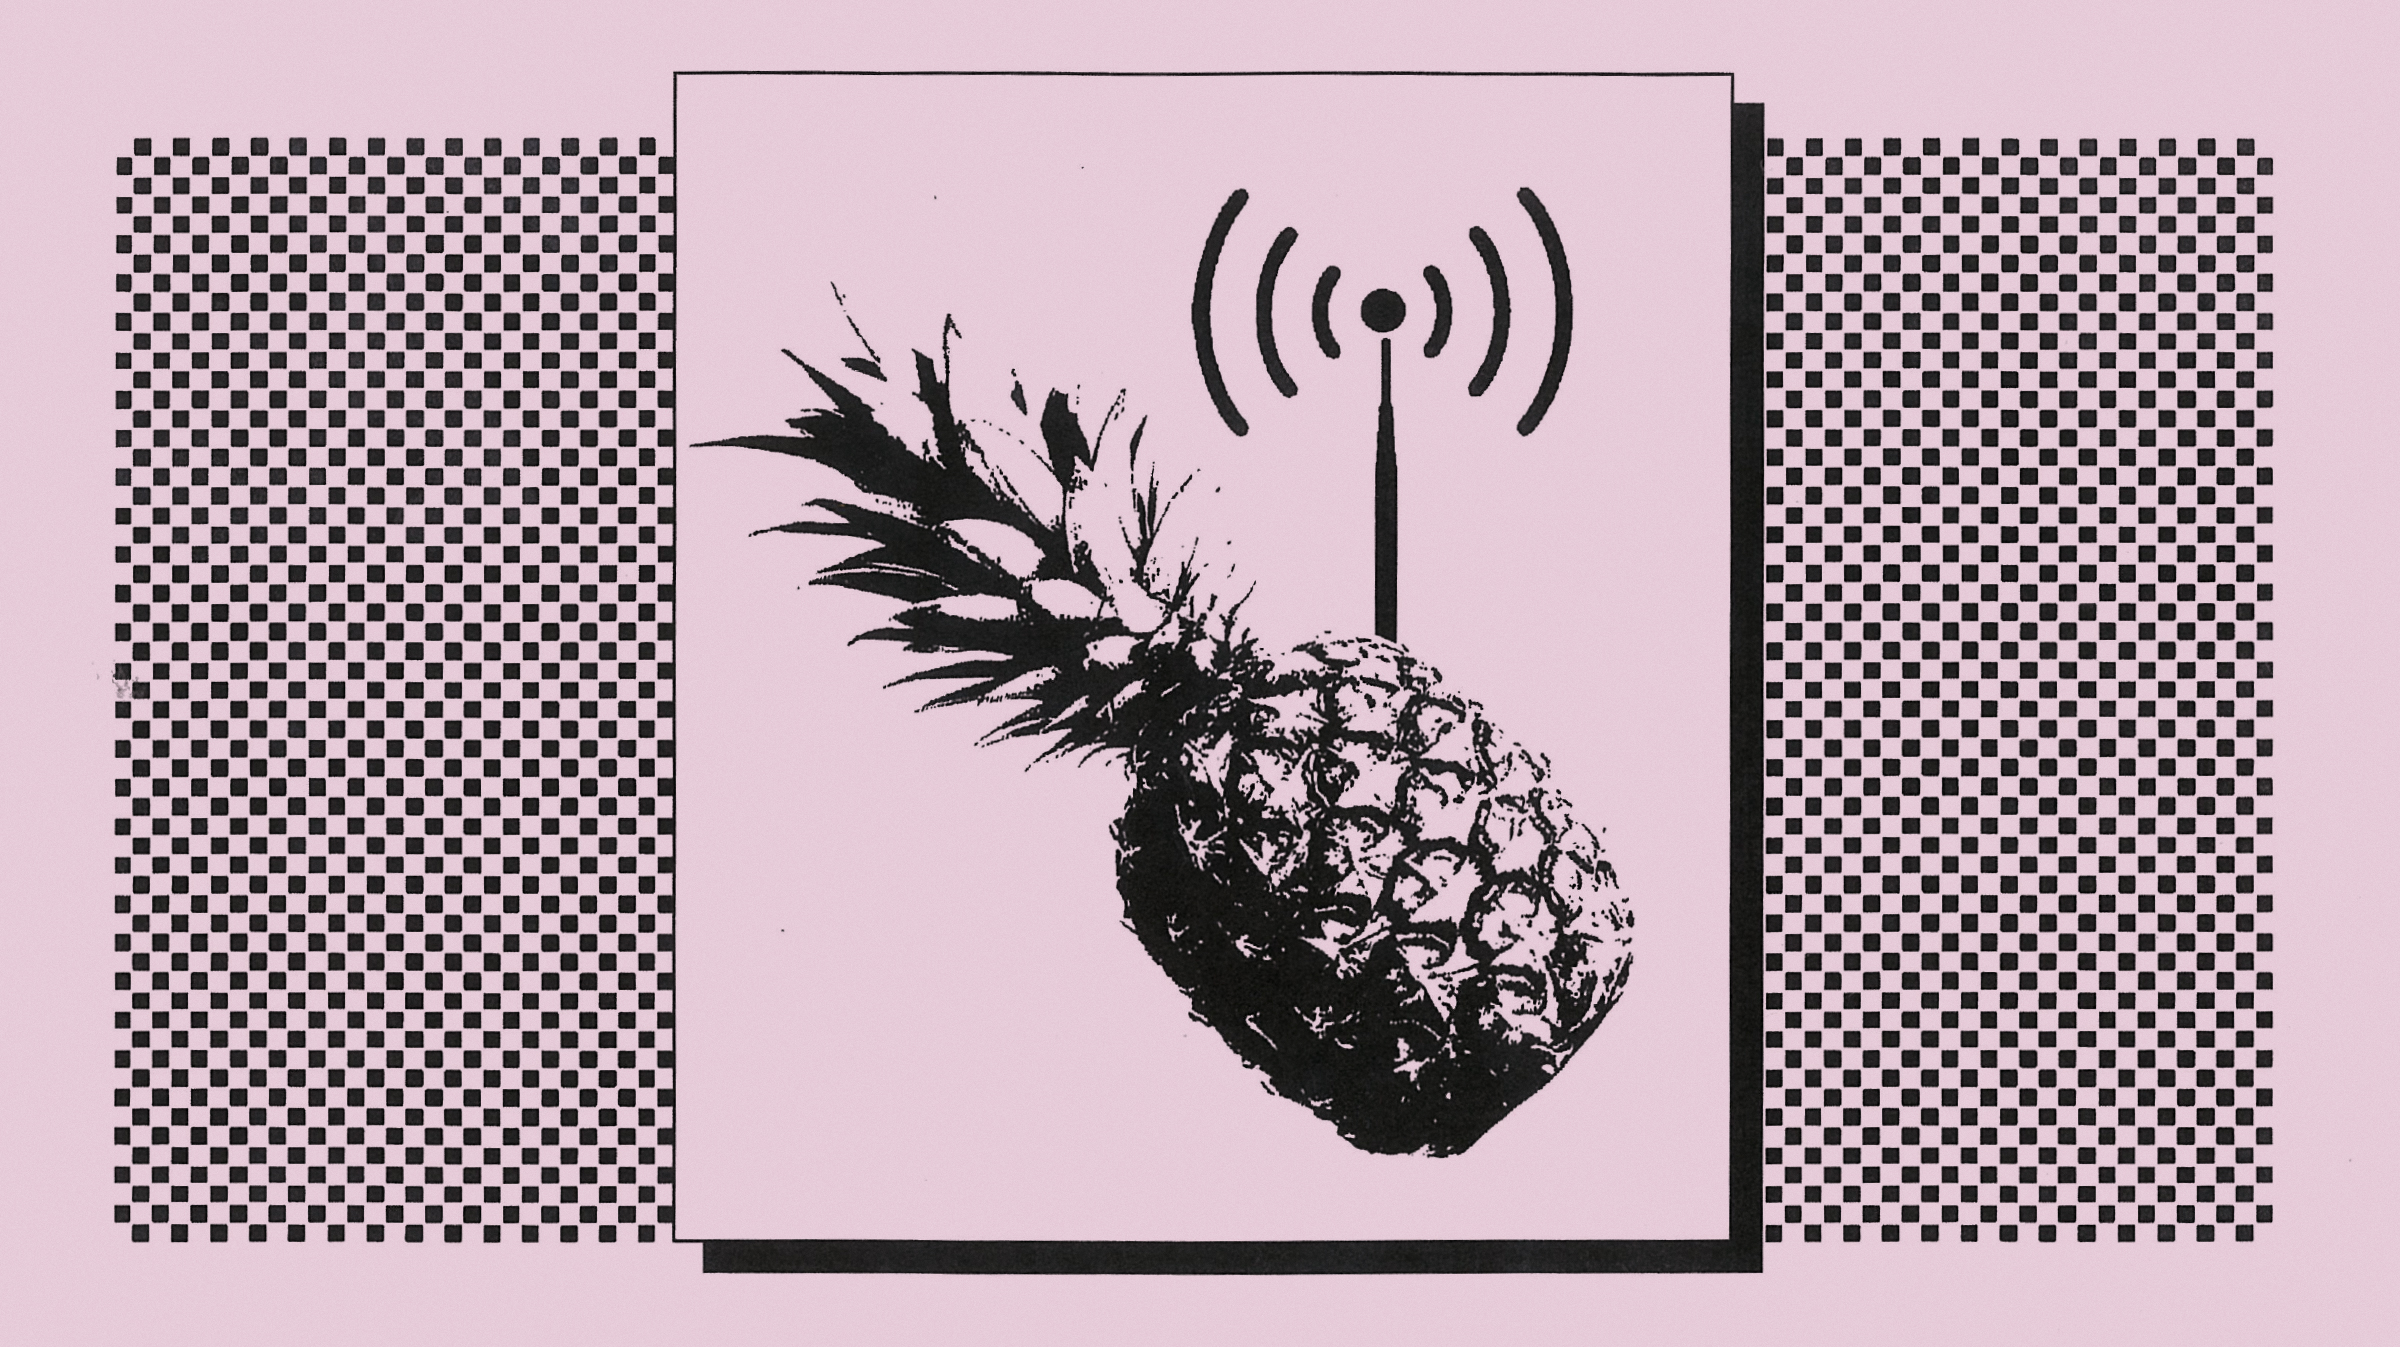 How a Wi-Fi Pineapple Can Steal Your Data (And How to Protect